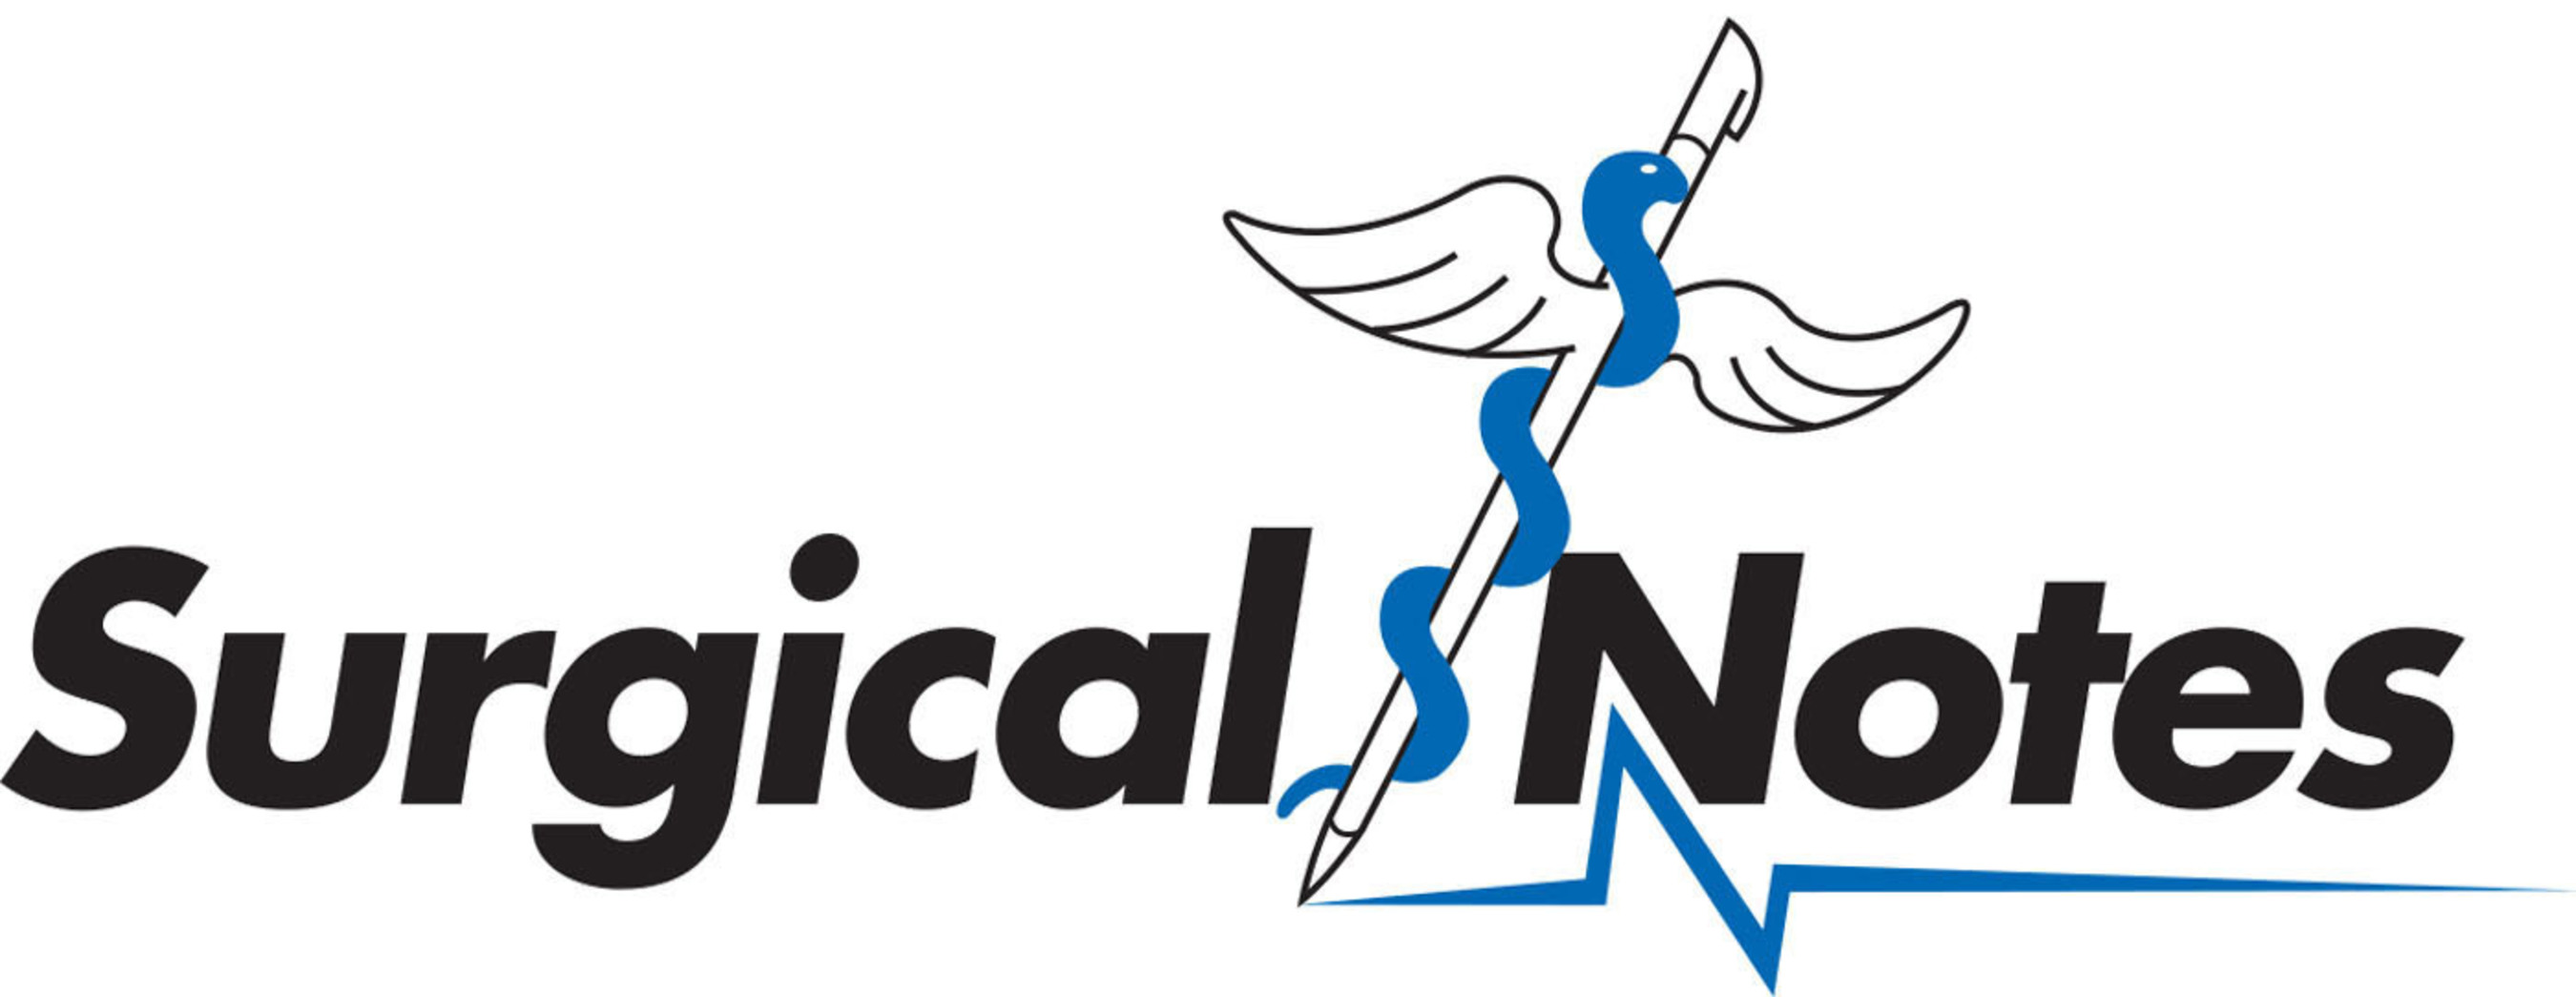 Surgical Notes, Inc. is a preeminent nationwide provider of transcription, coding and other related information  ...